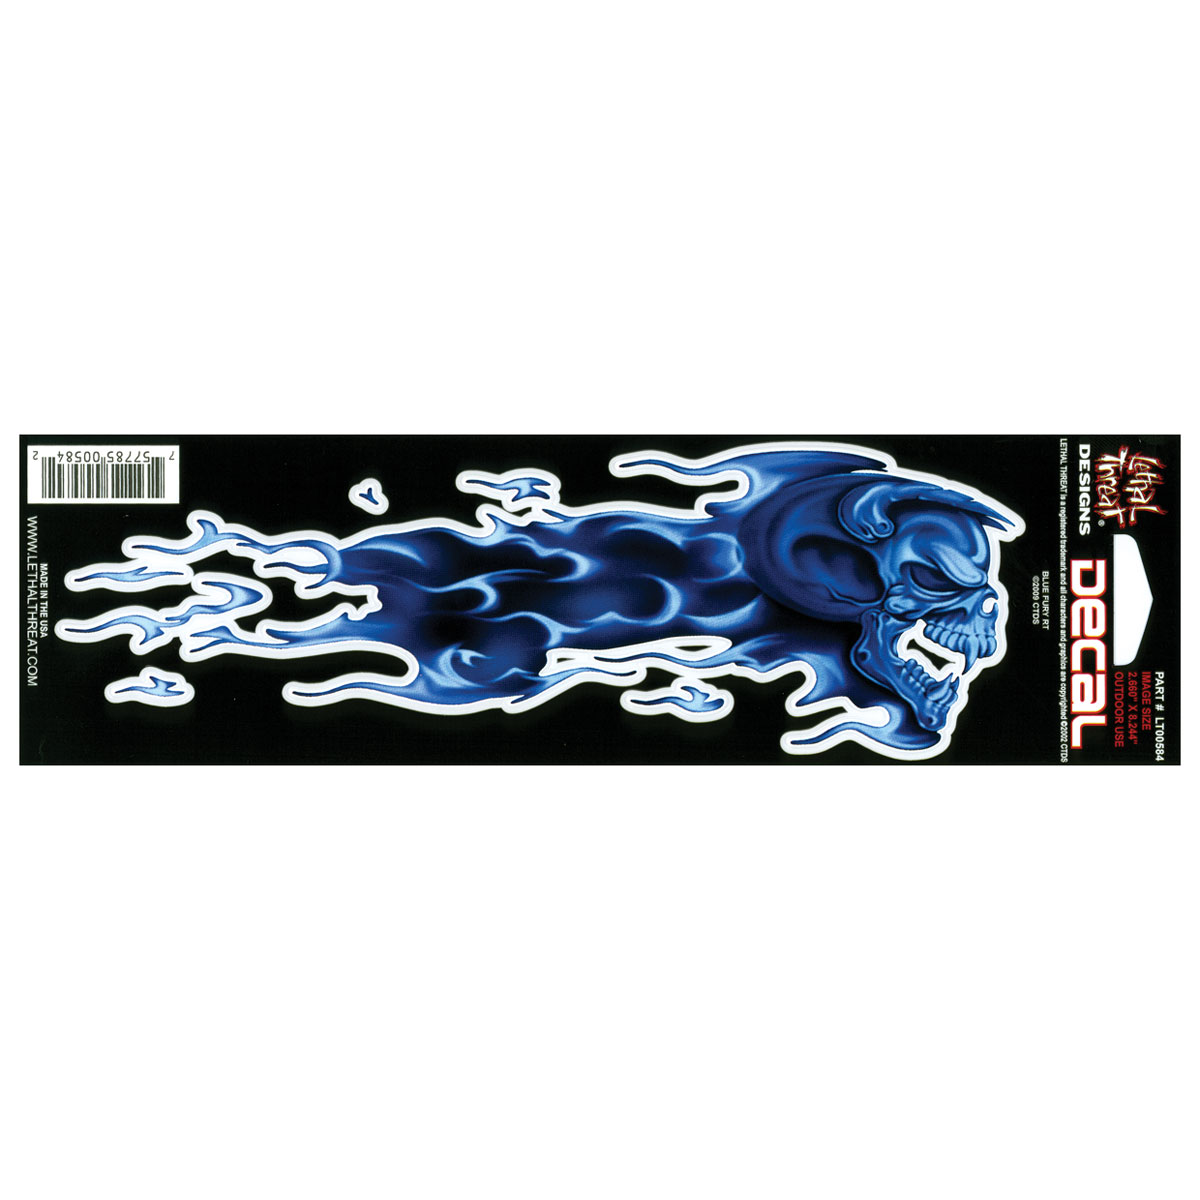 Lethal Threat Right Blue Fury Decal - Right